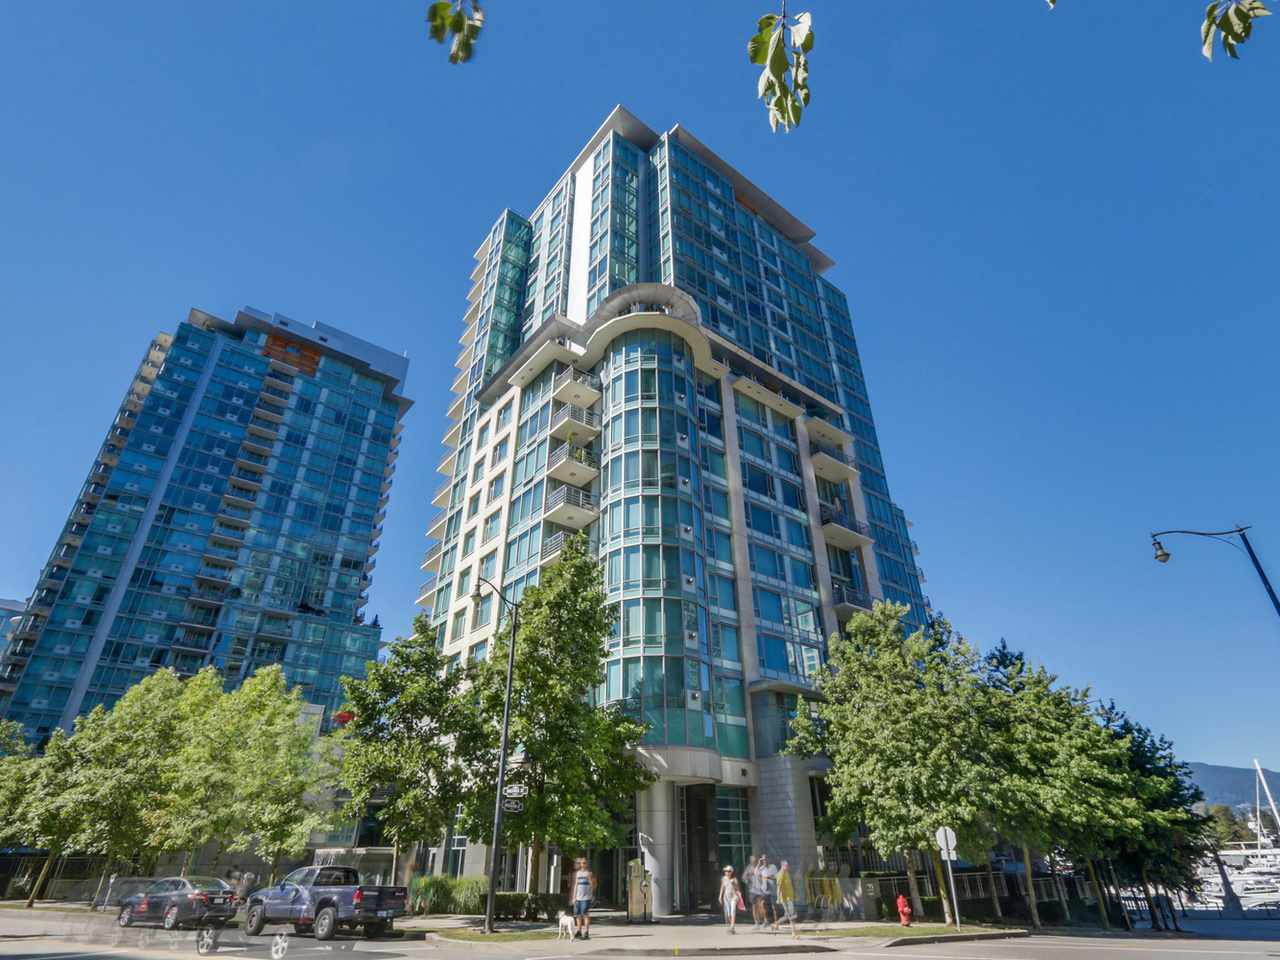 """Main Photo: 495 BROUGHTON Street in Vancouver: Coal Harbour Townhouse for sale in """"DENIA"""" (Vancouver West)  : MLS®# R2096844"""